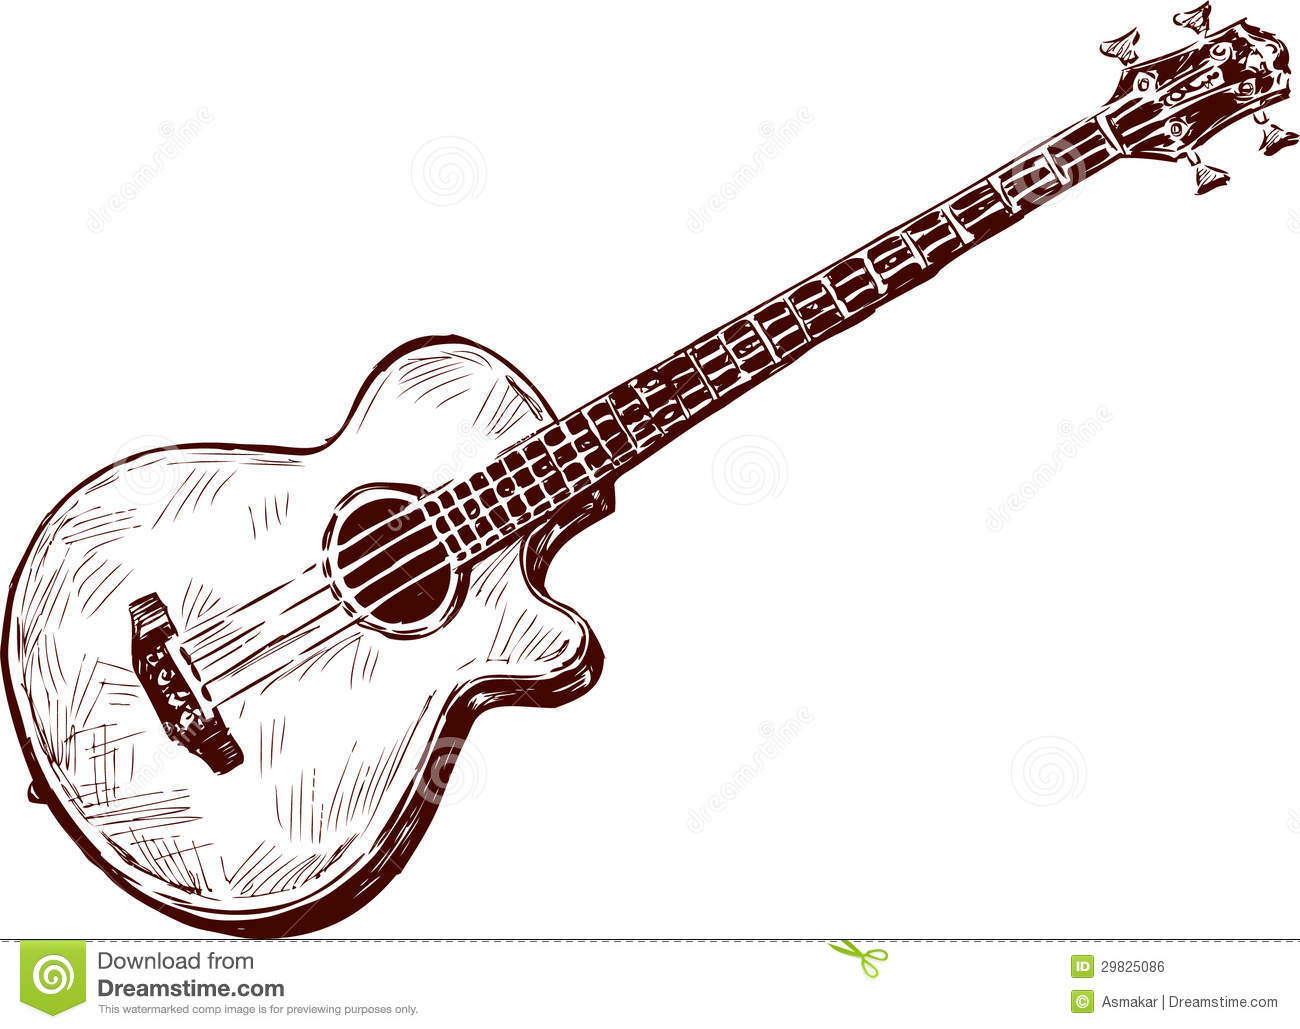 Acoustic guitar stock photo. Image of sketch, musical ...